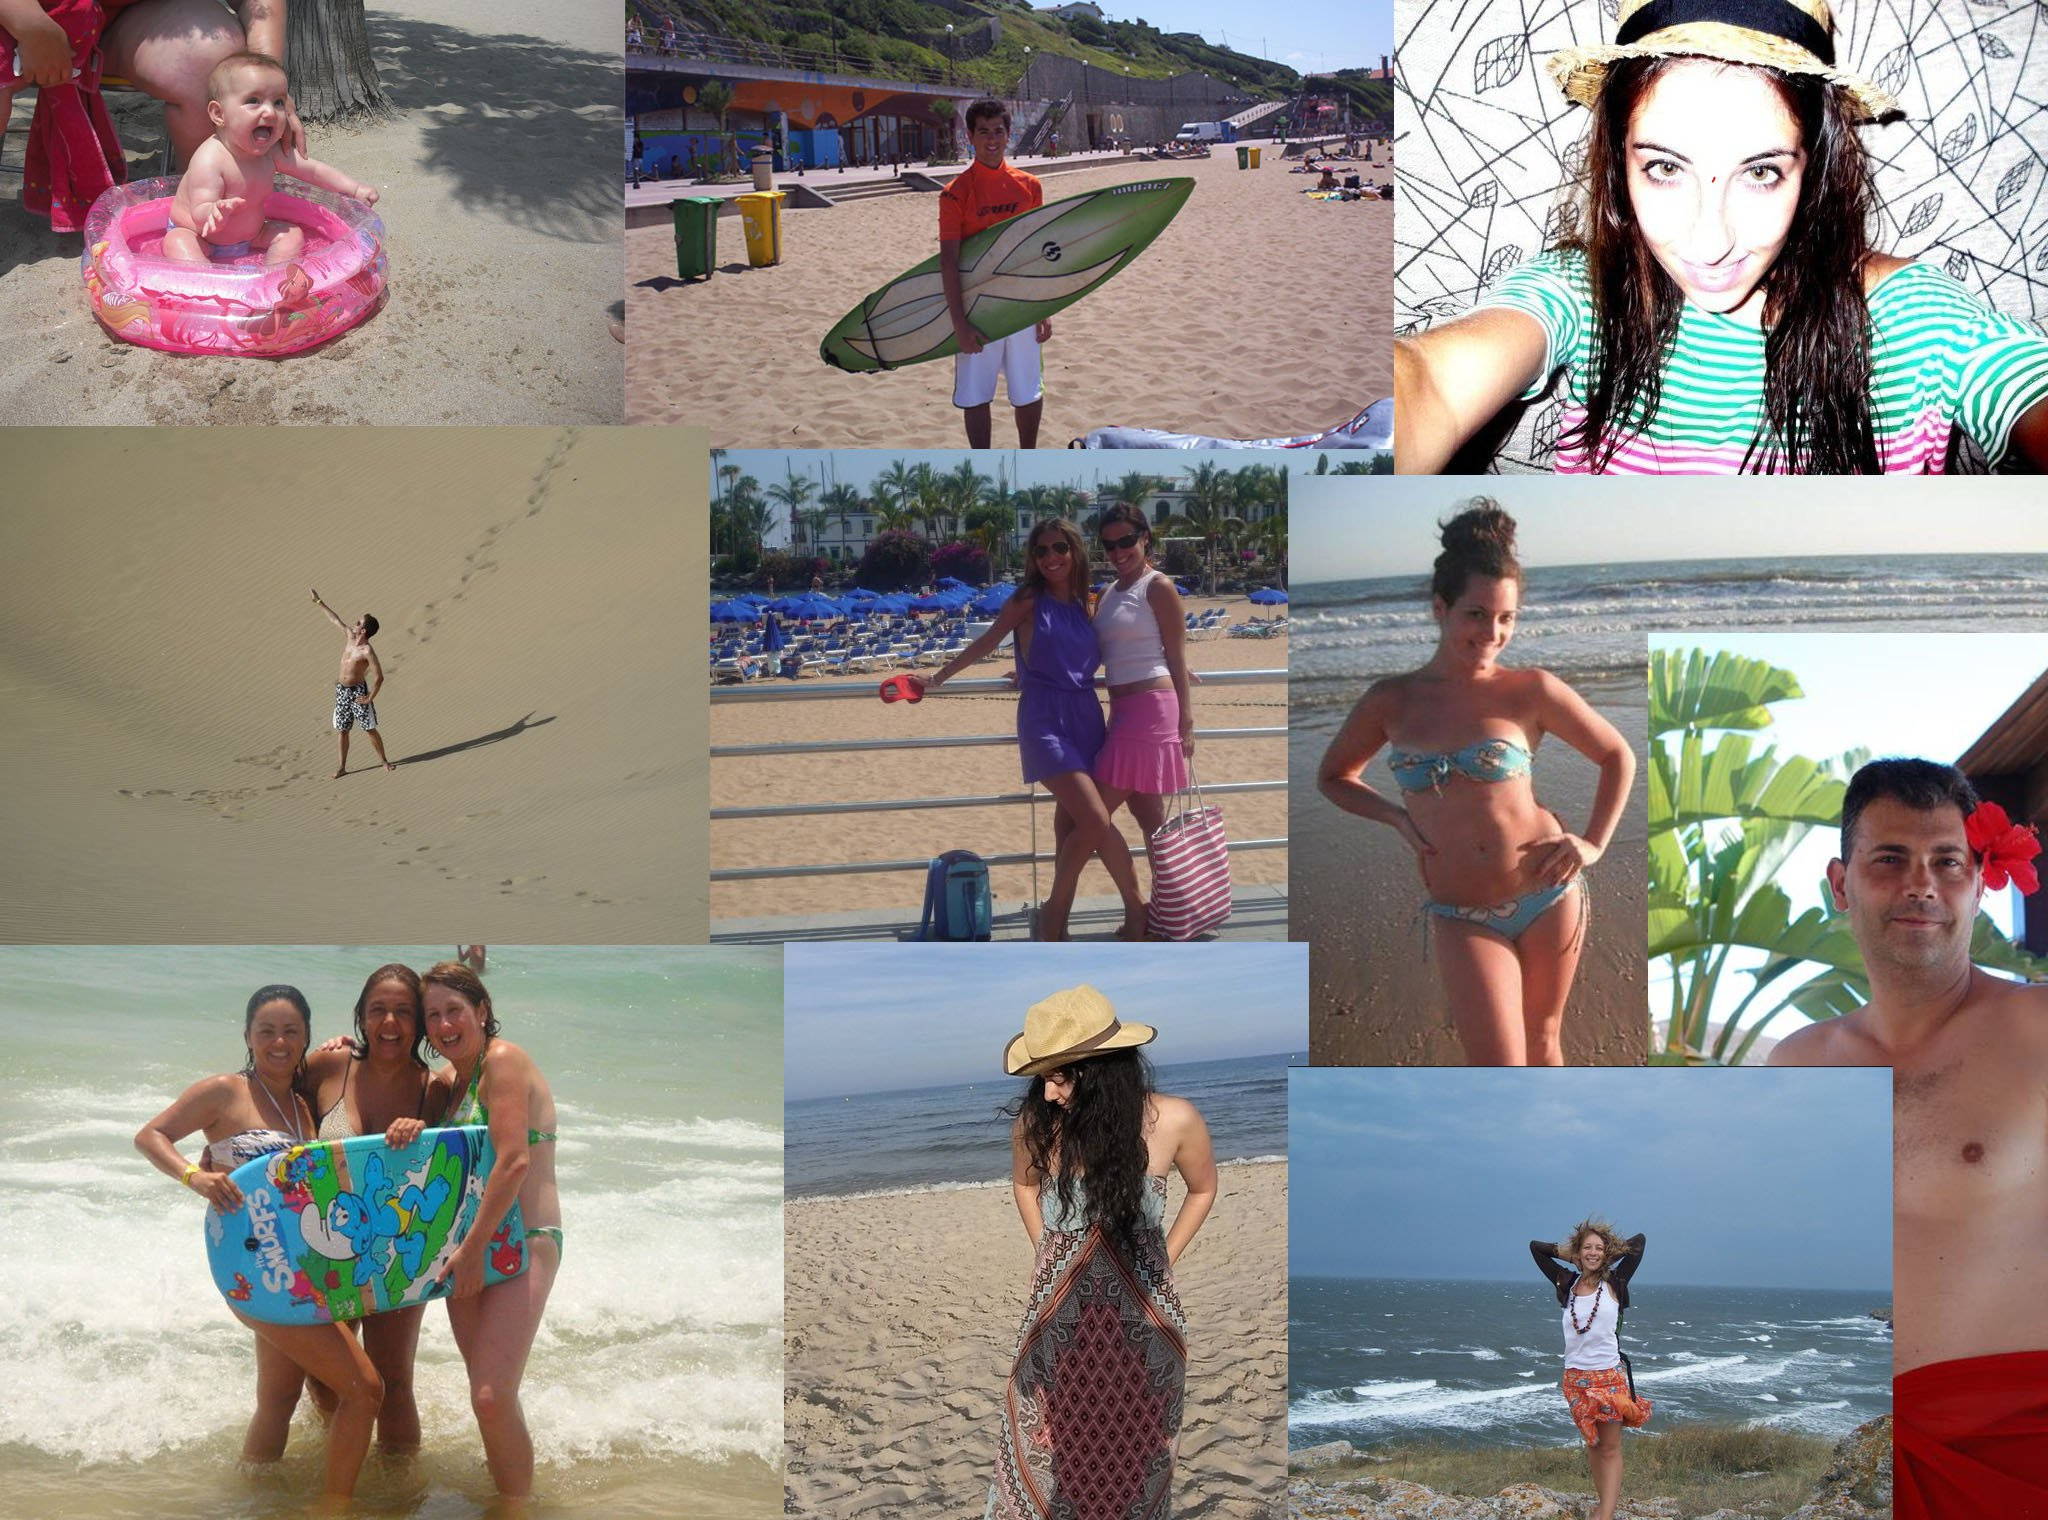 Ganadores look playero